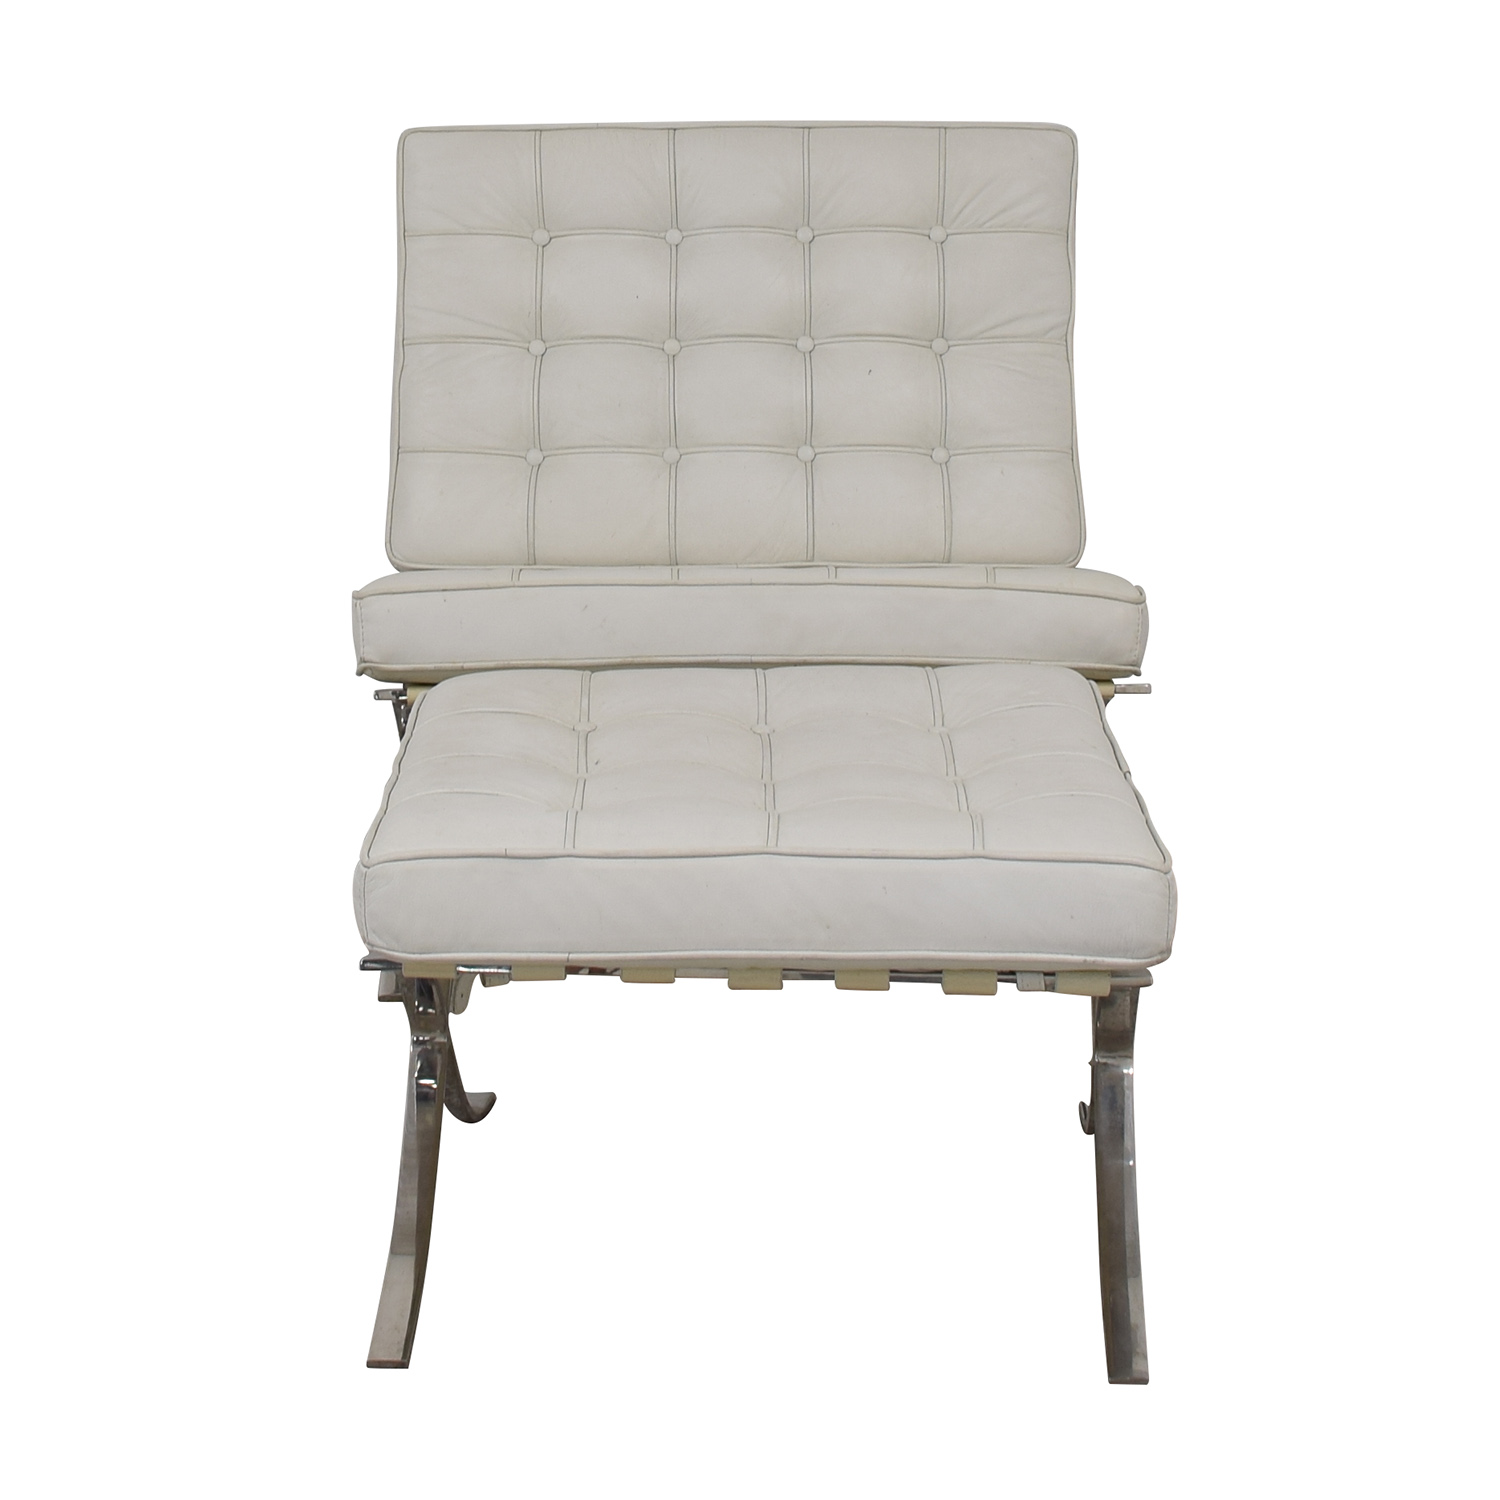 Barcelona Style White Tufted Chair and Ottoman second hand